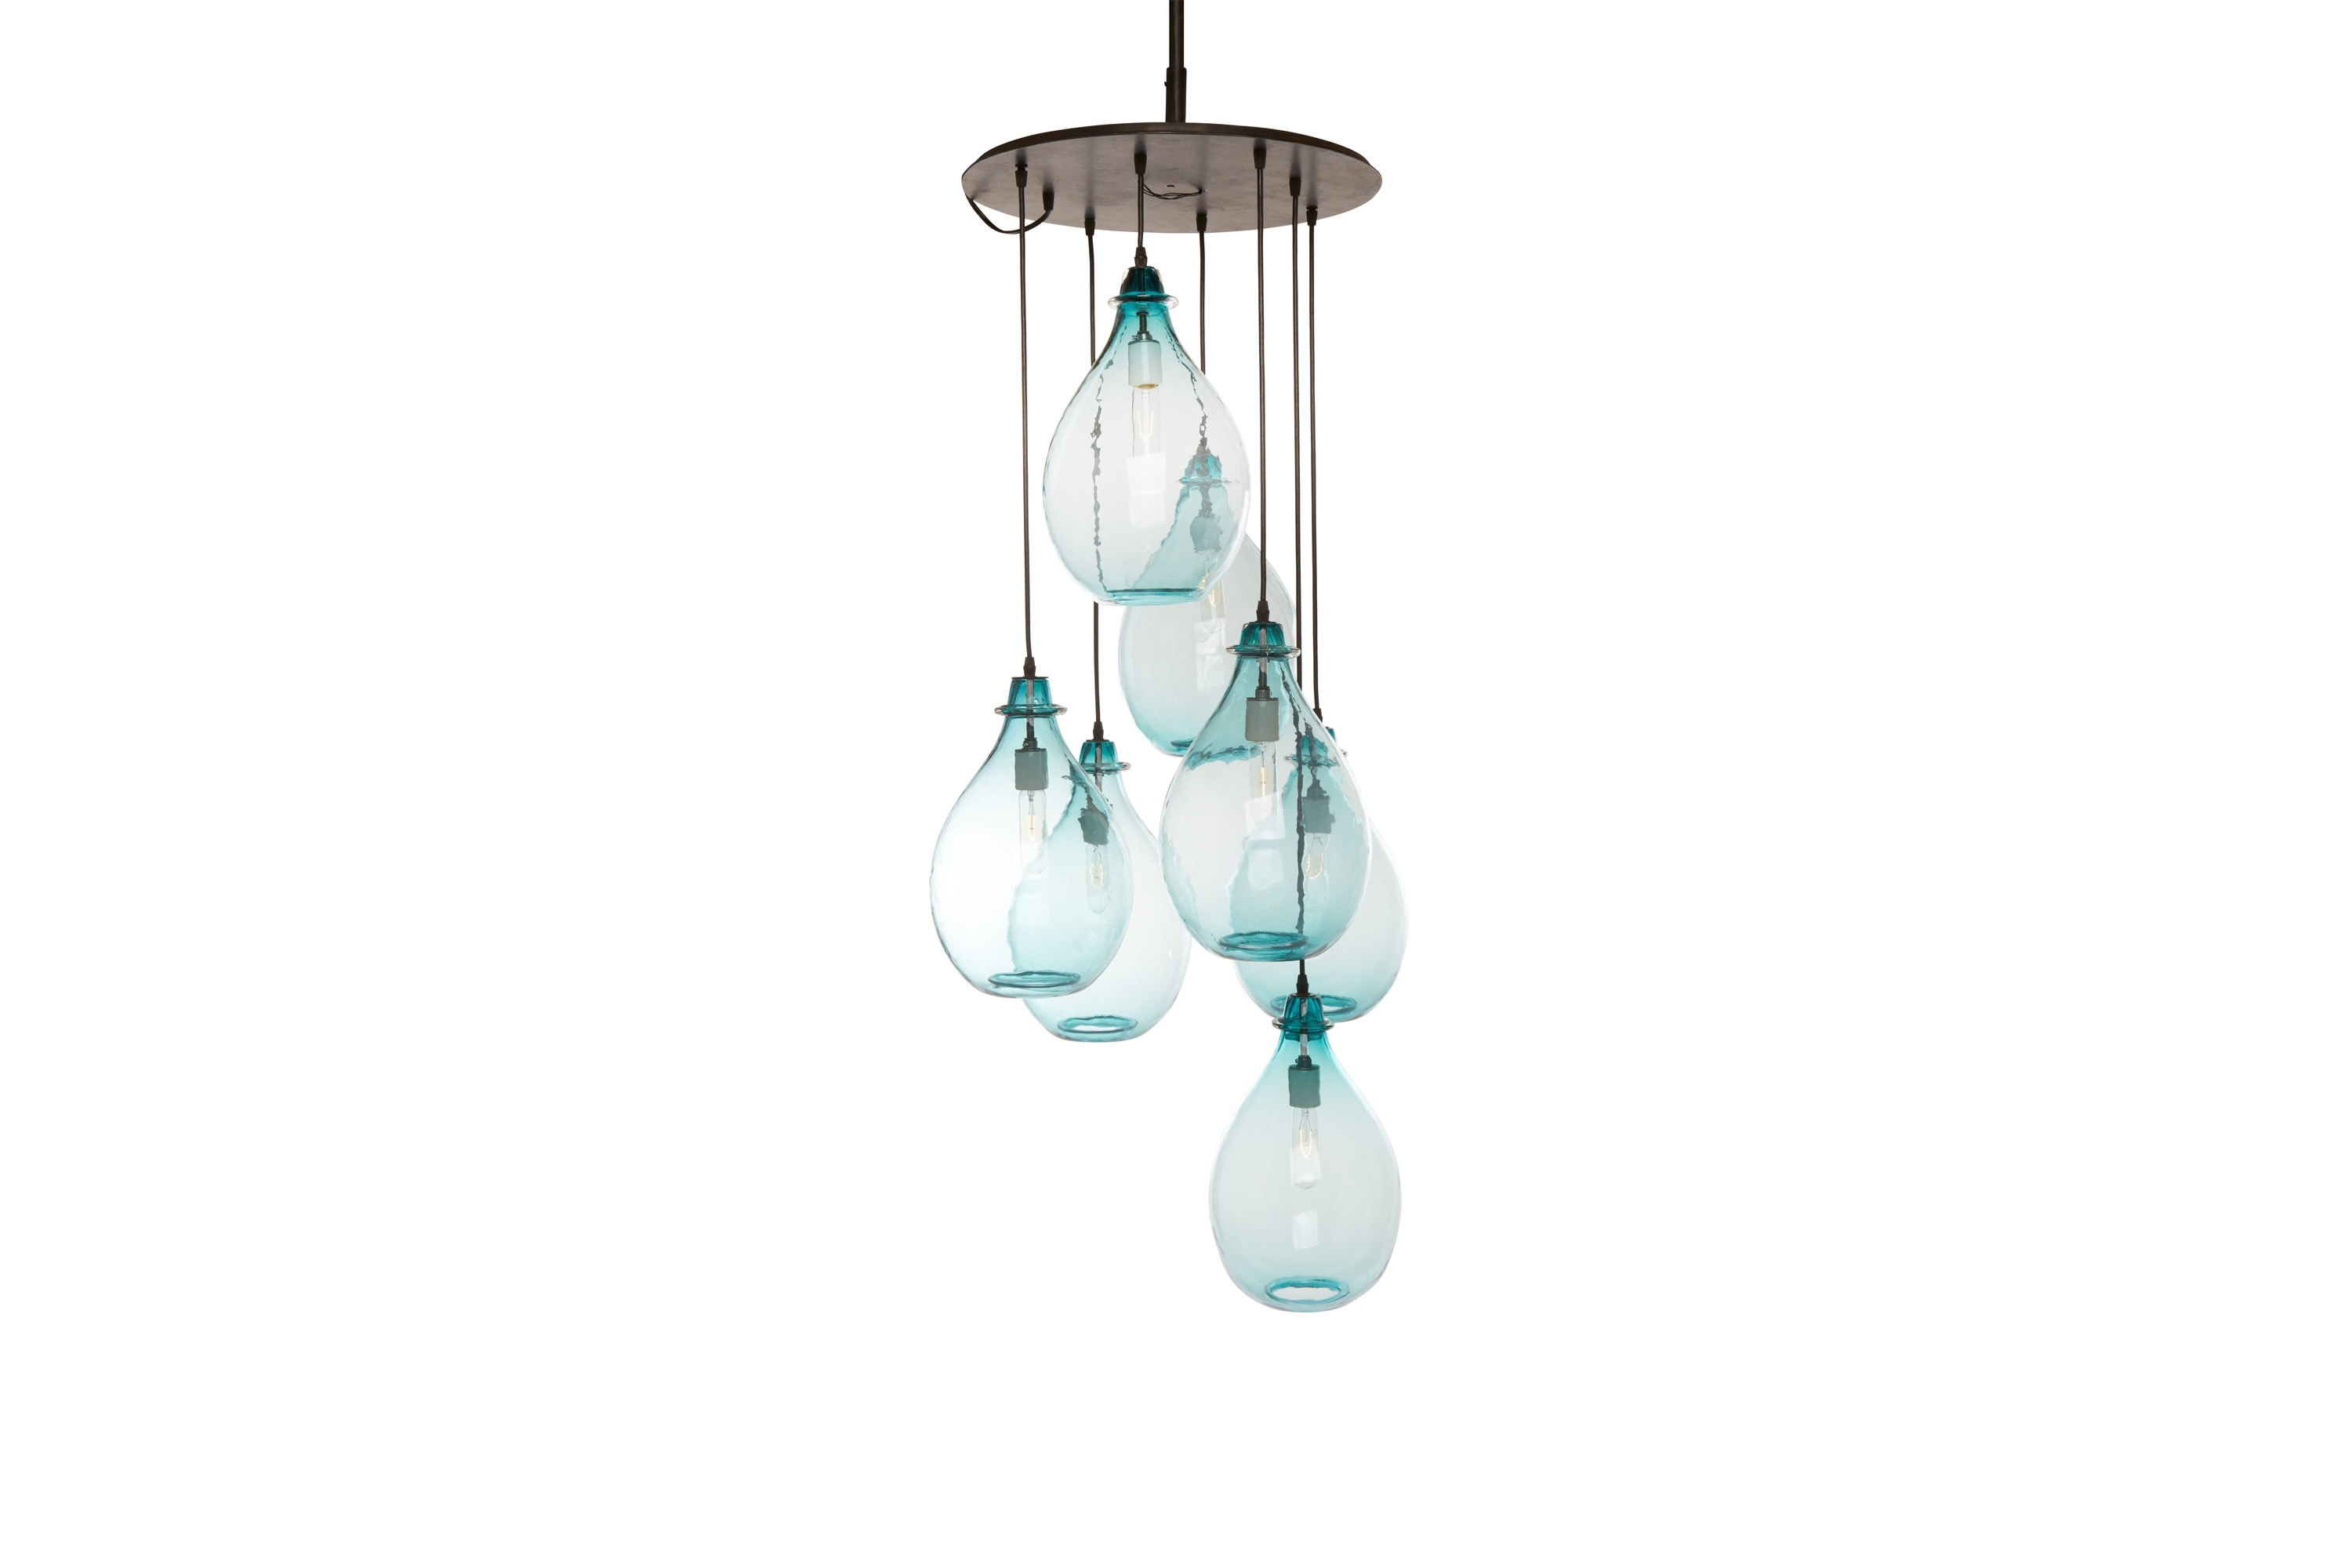 Lighting Categories With Regard To Well Liked Turquoise Lantern Chandeliers (View 11 of 15)